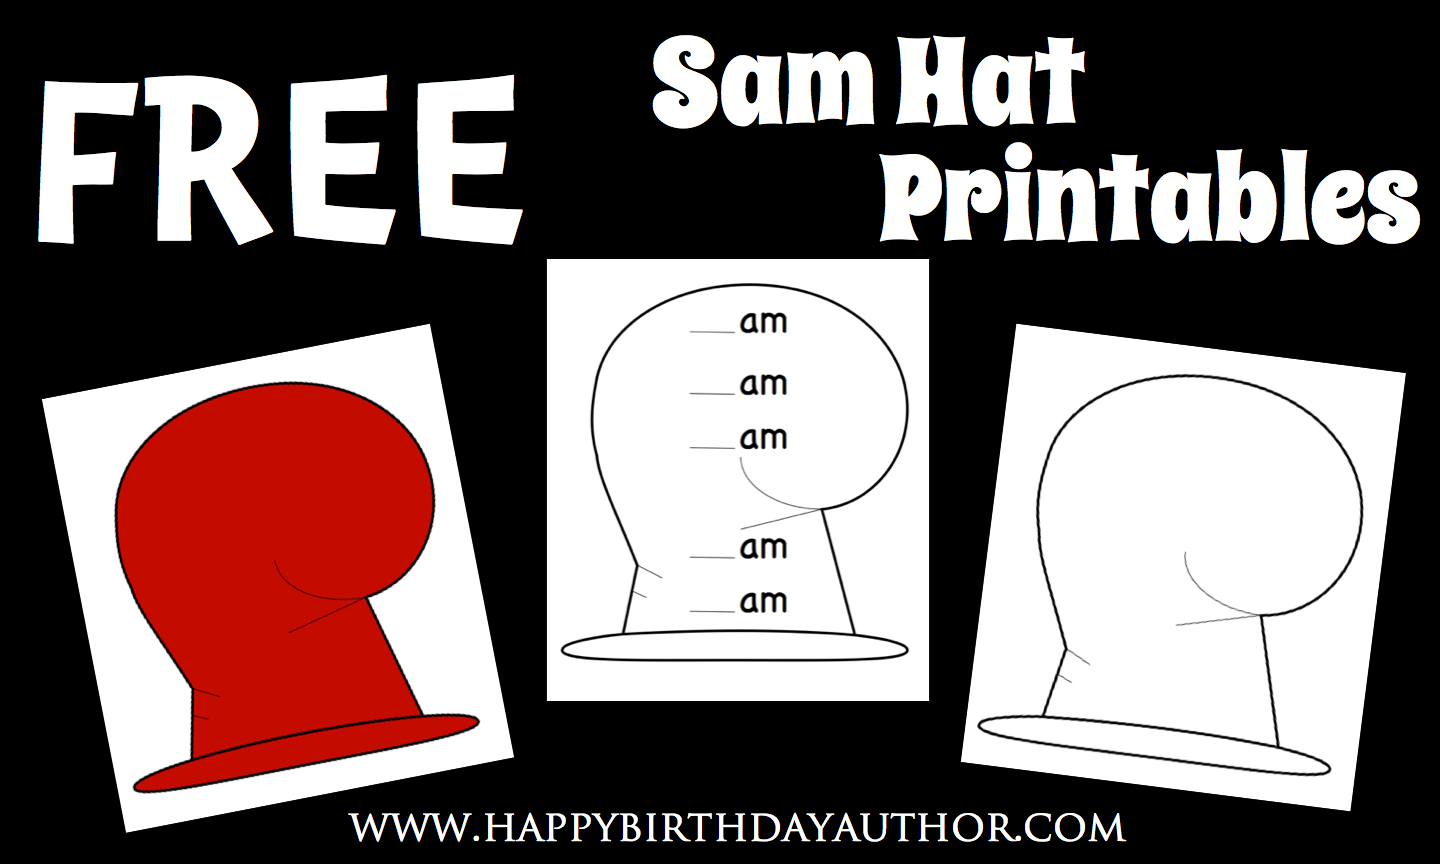 Happy Birthday Author Free Sam Hat Printables For Dr